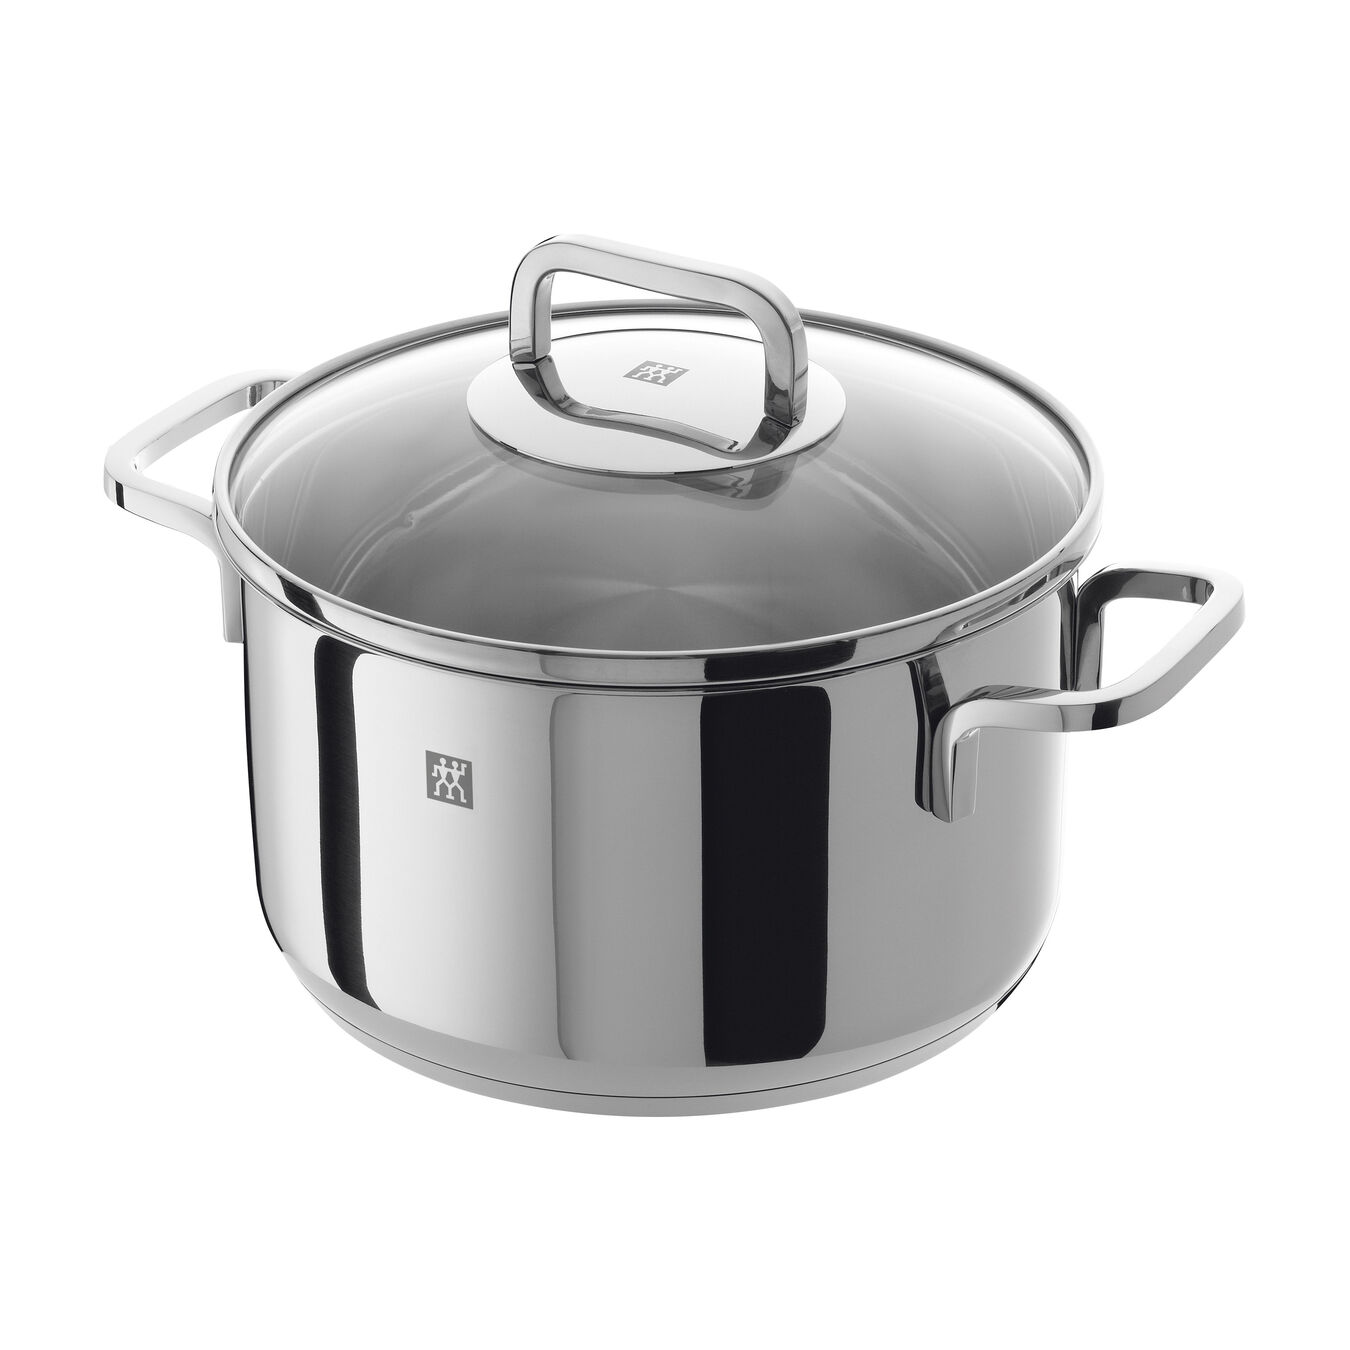 10 Piece 18/10 Stainless Steel Cookware set,,large 2